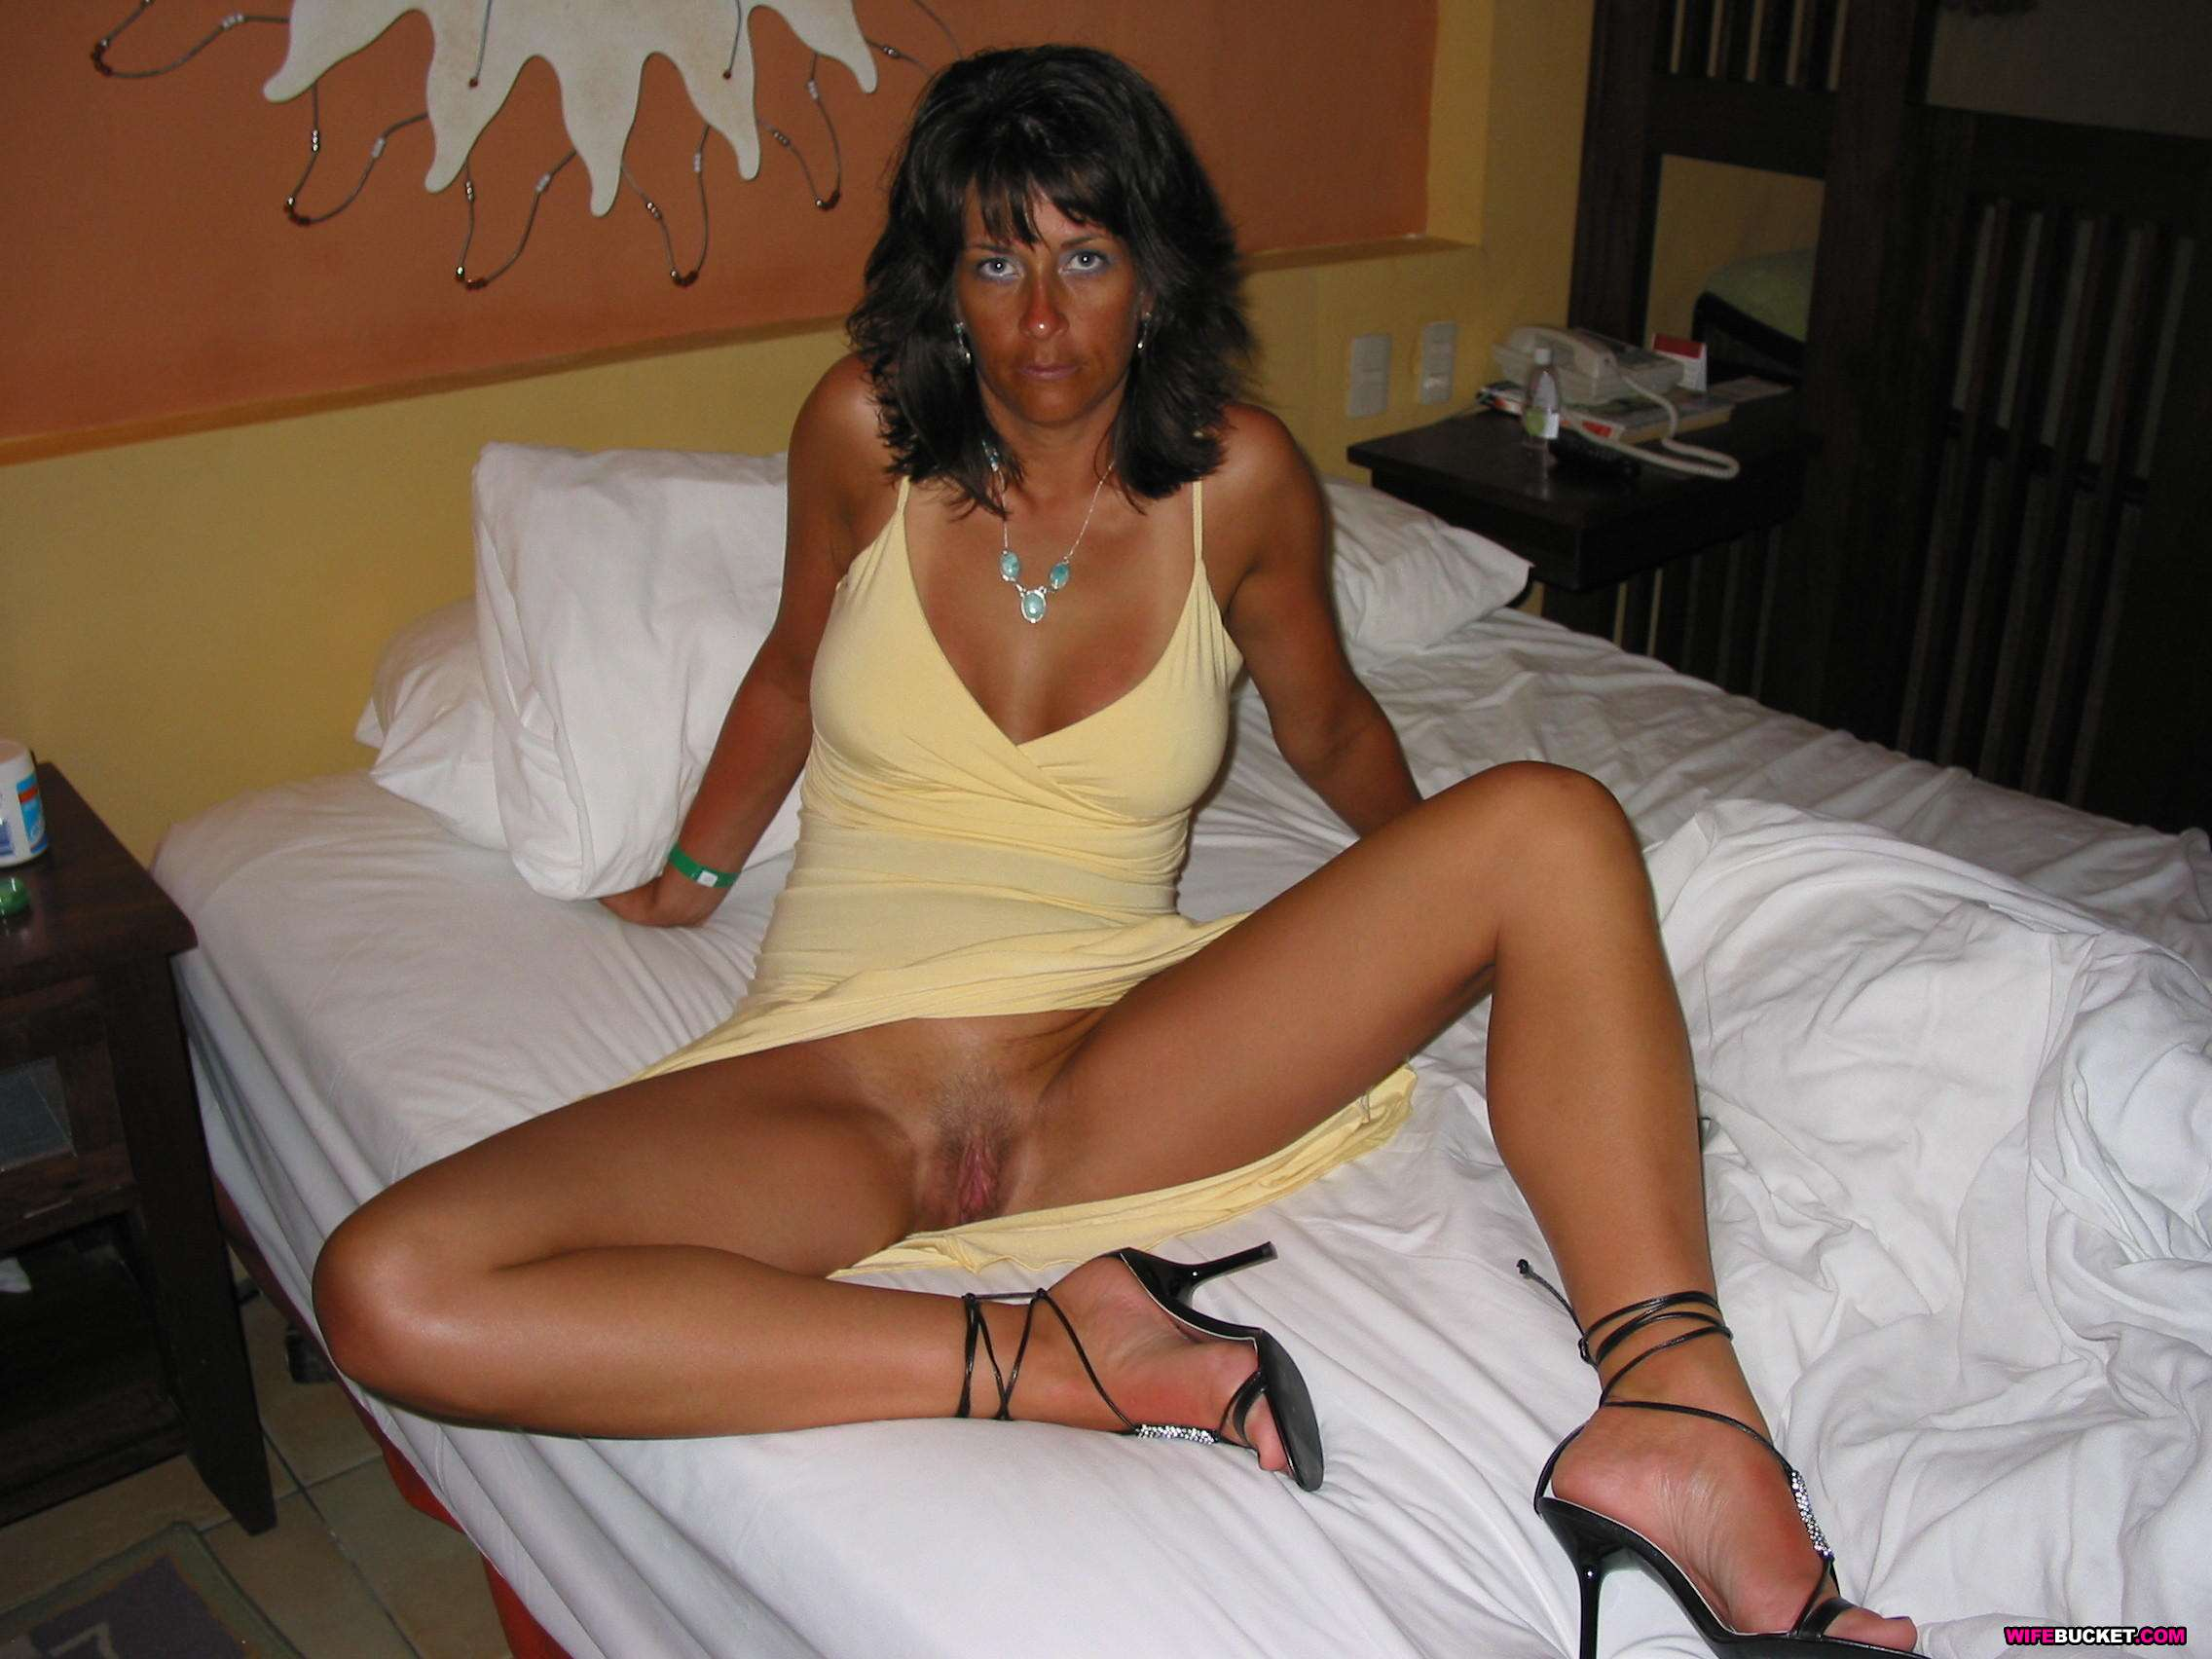 Wife Bucket - Real amateur MILFs, wives, and moms! Swingers too: wifebucket.com/fhg/photo/p6/013-wives-and-milfs/index.php